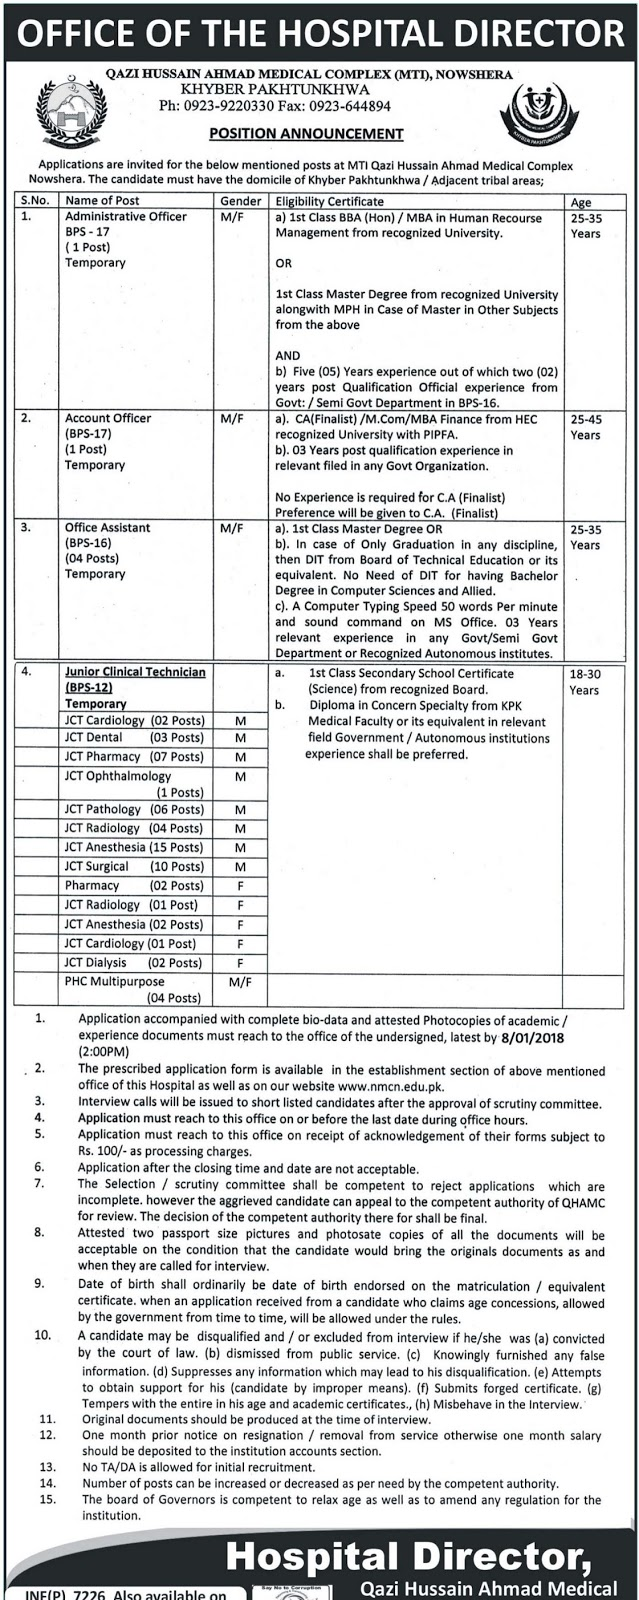 Jobs In Qazi Hussain Ahmed Medical Complex Nowshera Dec 2017